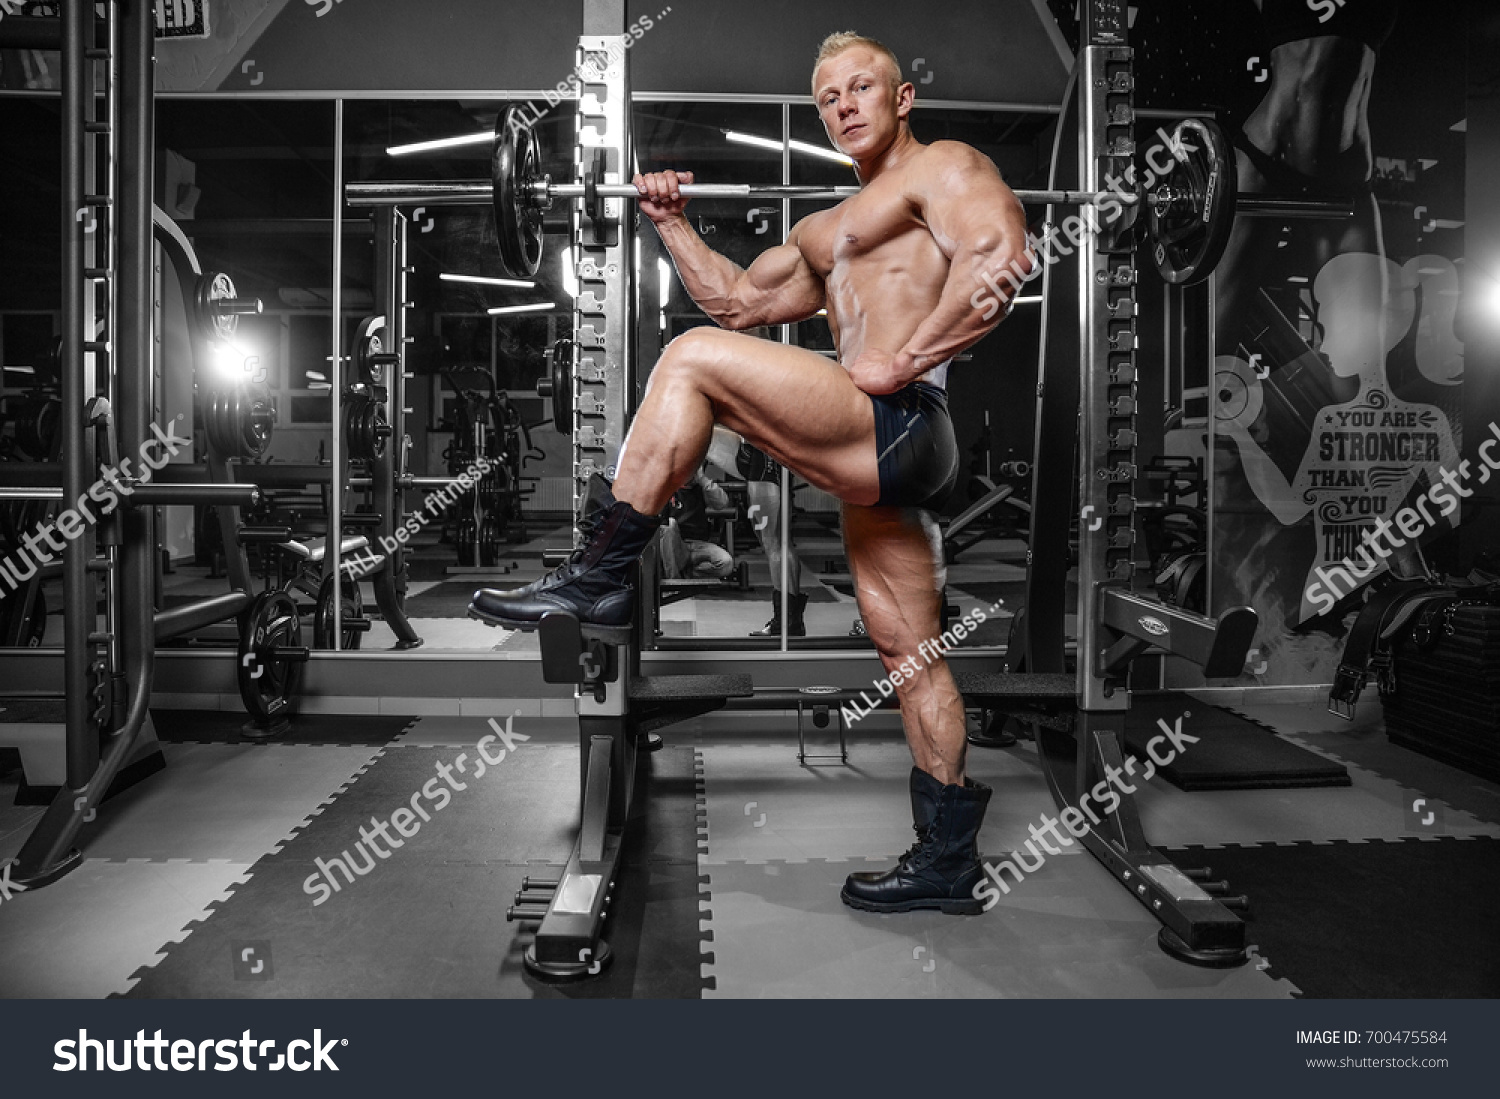 How to pump the broadest muscles 26